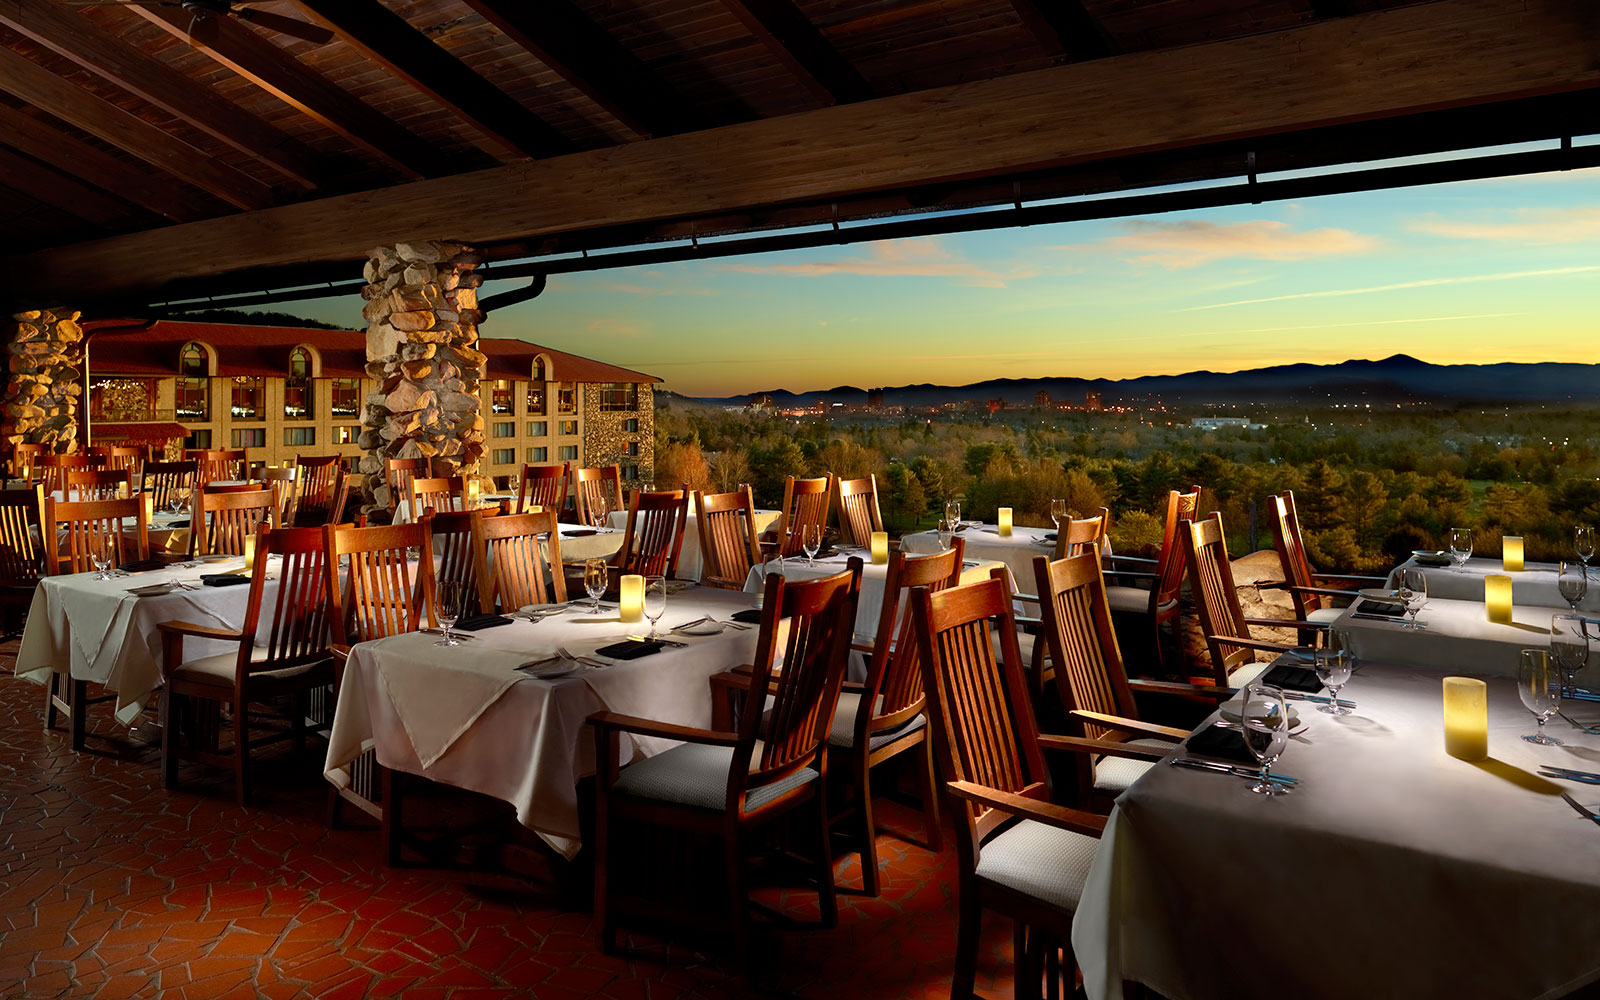 Ten of America's Best Outdoor Dining Spots, According to OpenTable: Sunset Terrace in Asheville, North Carolina